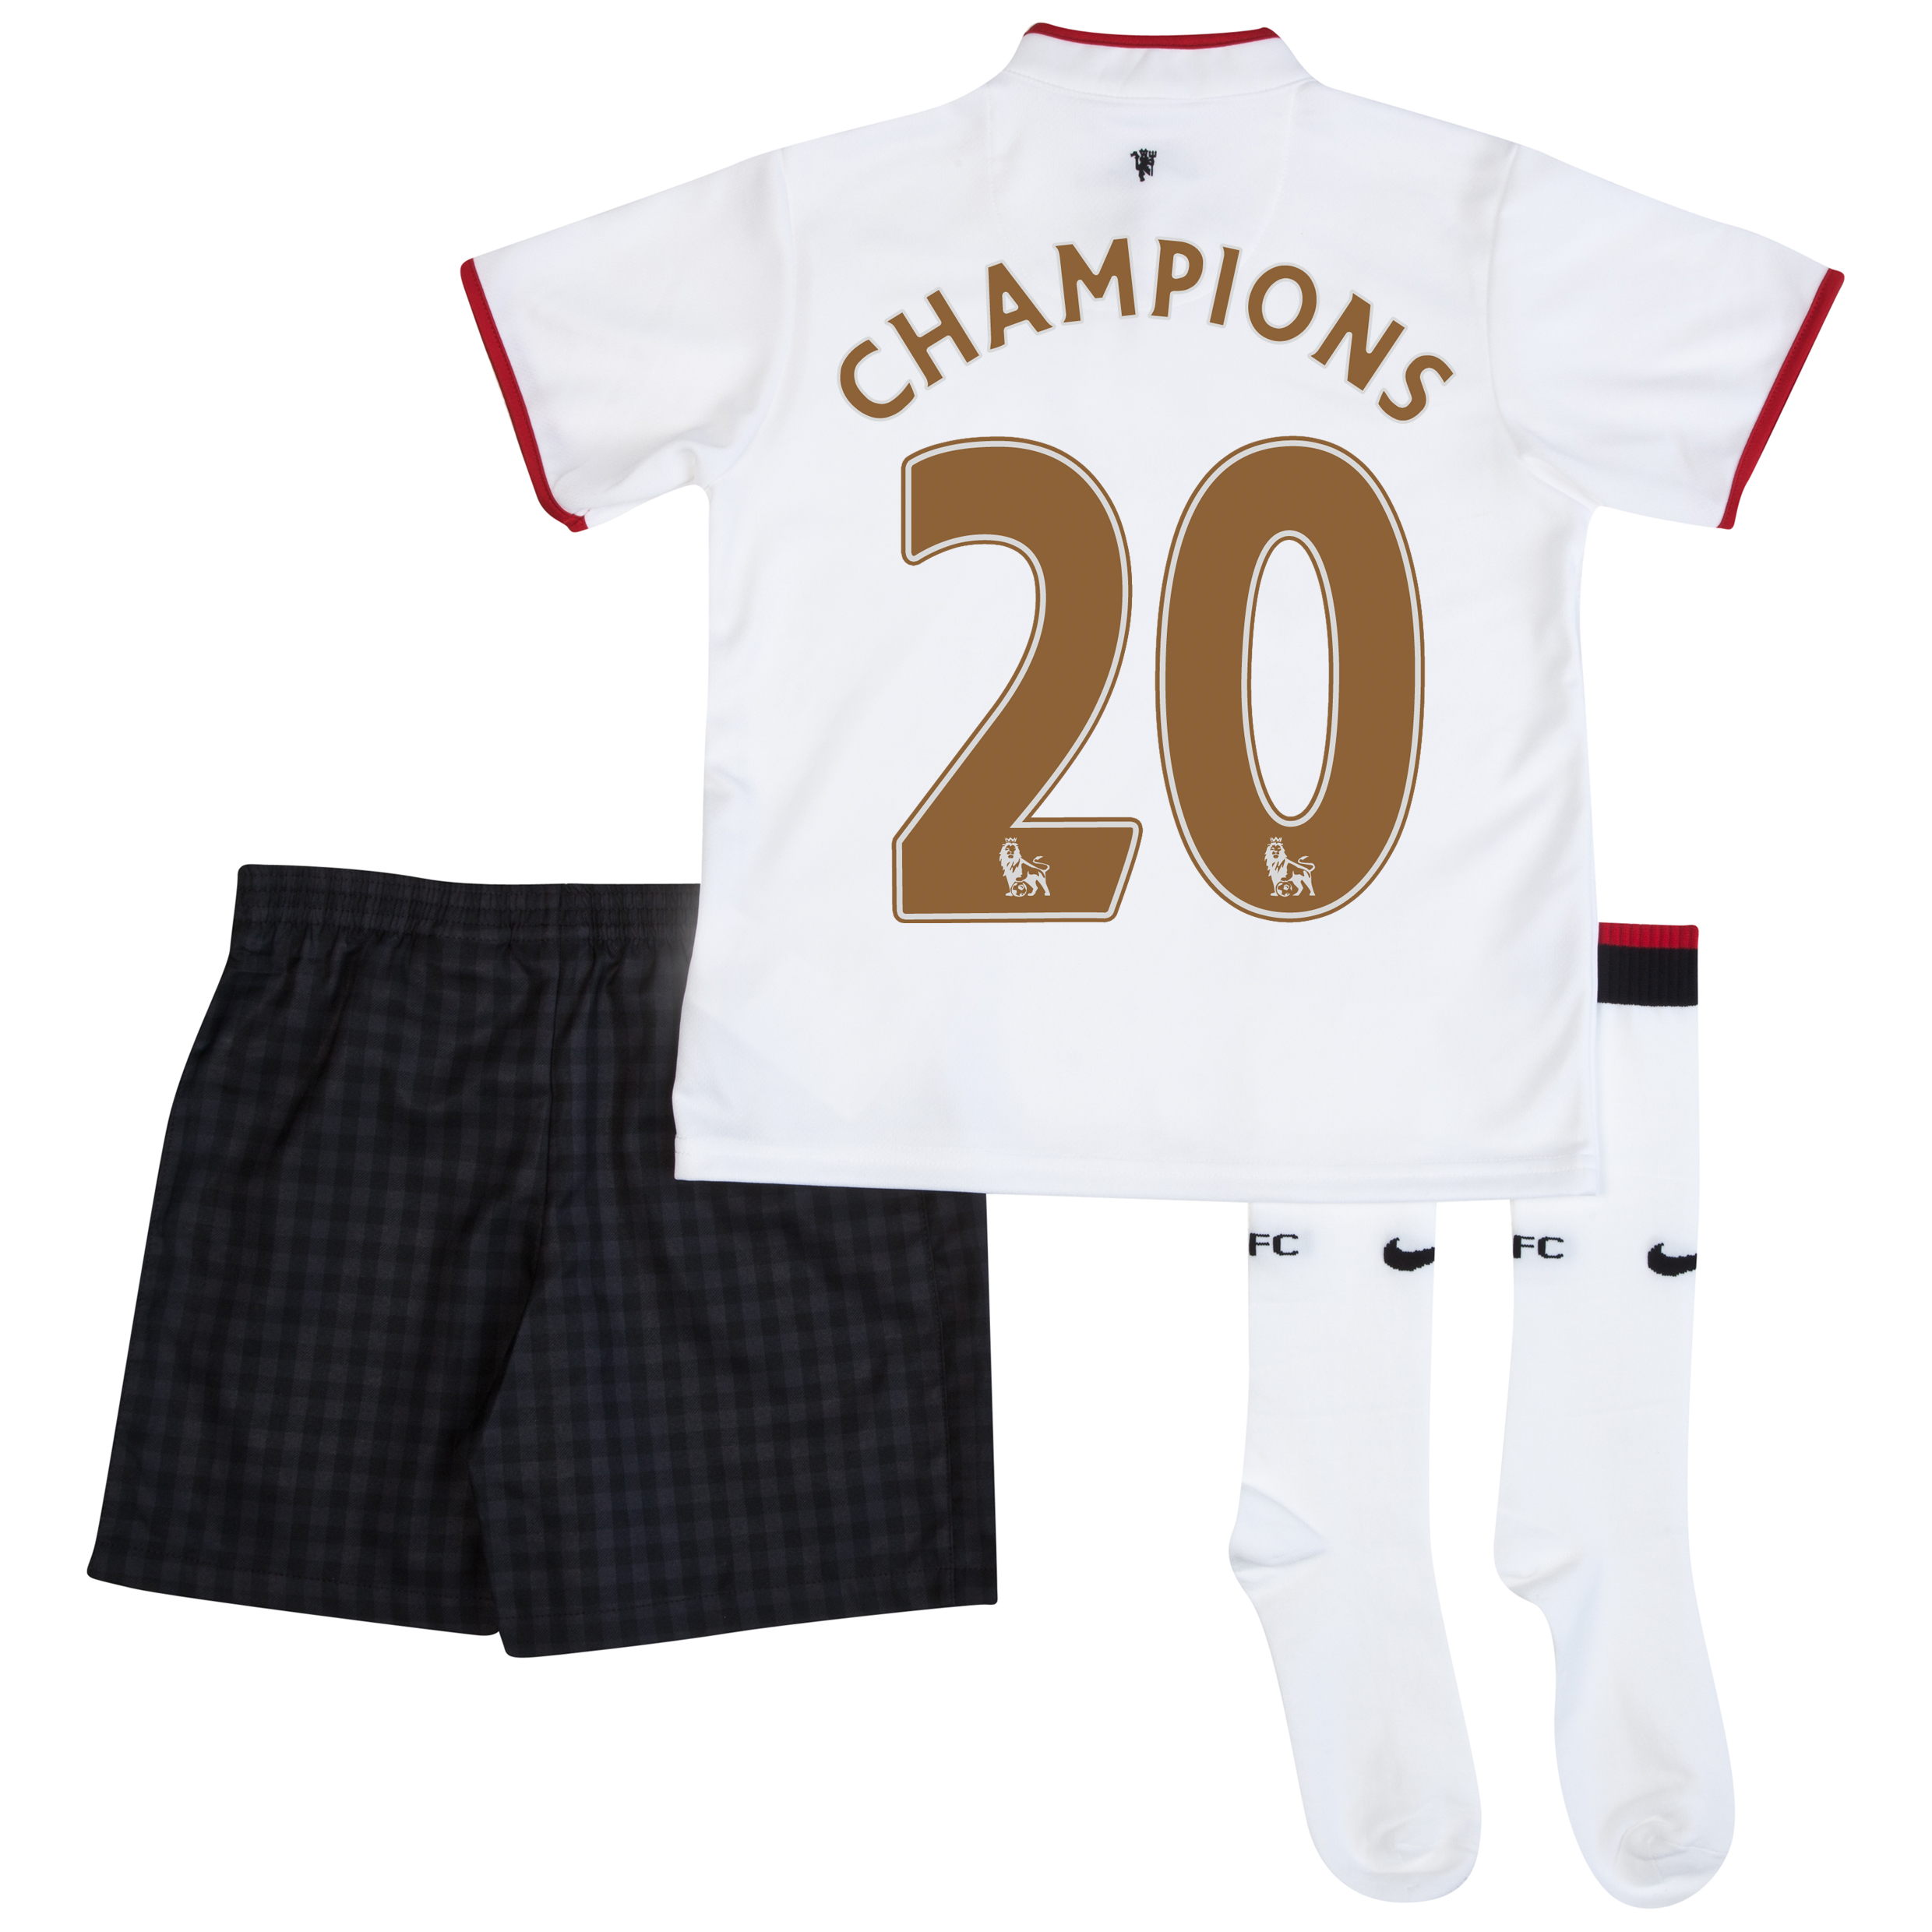 Manchester United Away Kit 2012/13 - Little Boys with Champions 20 printing